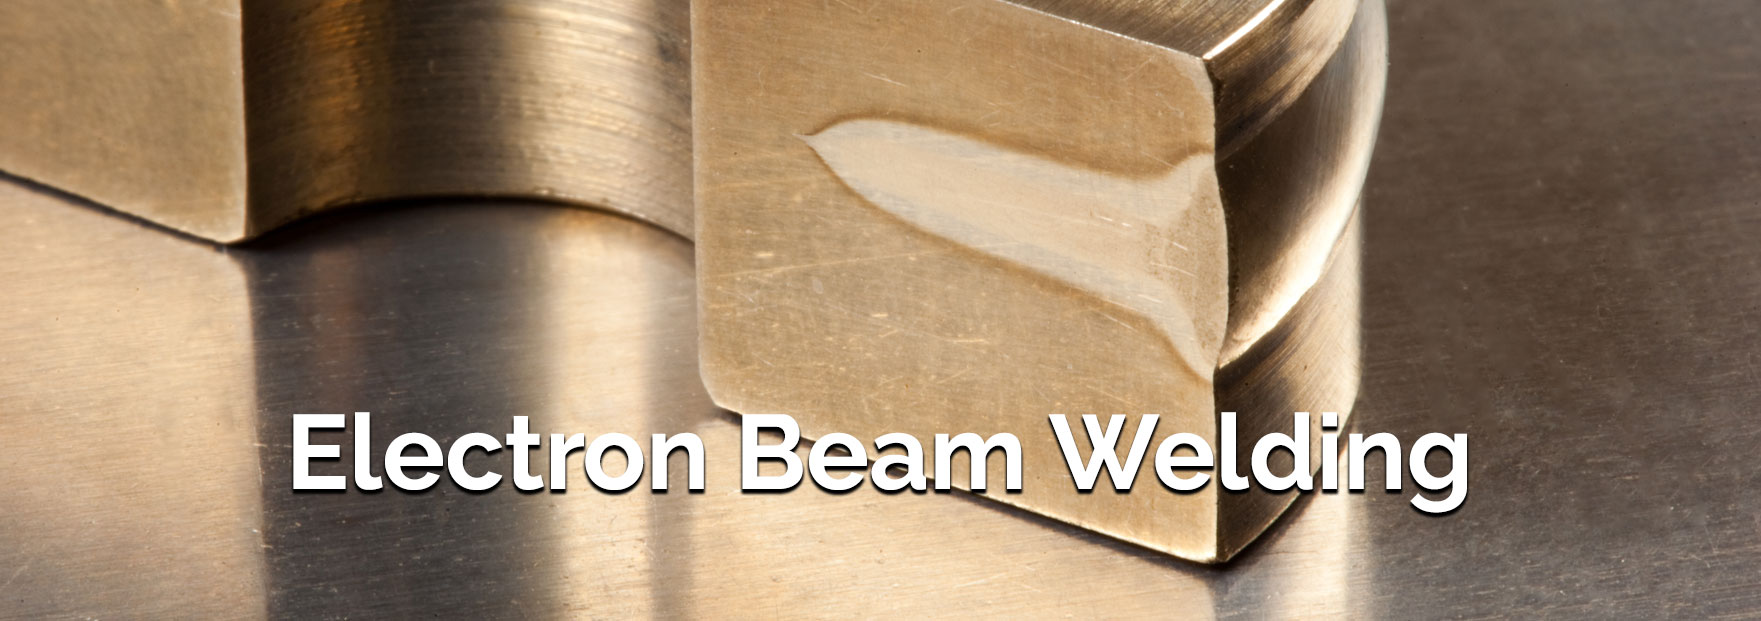 Electron Beam Welding in Houston